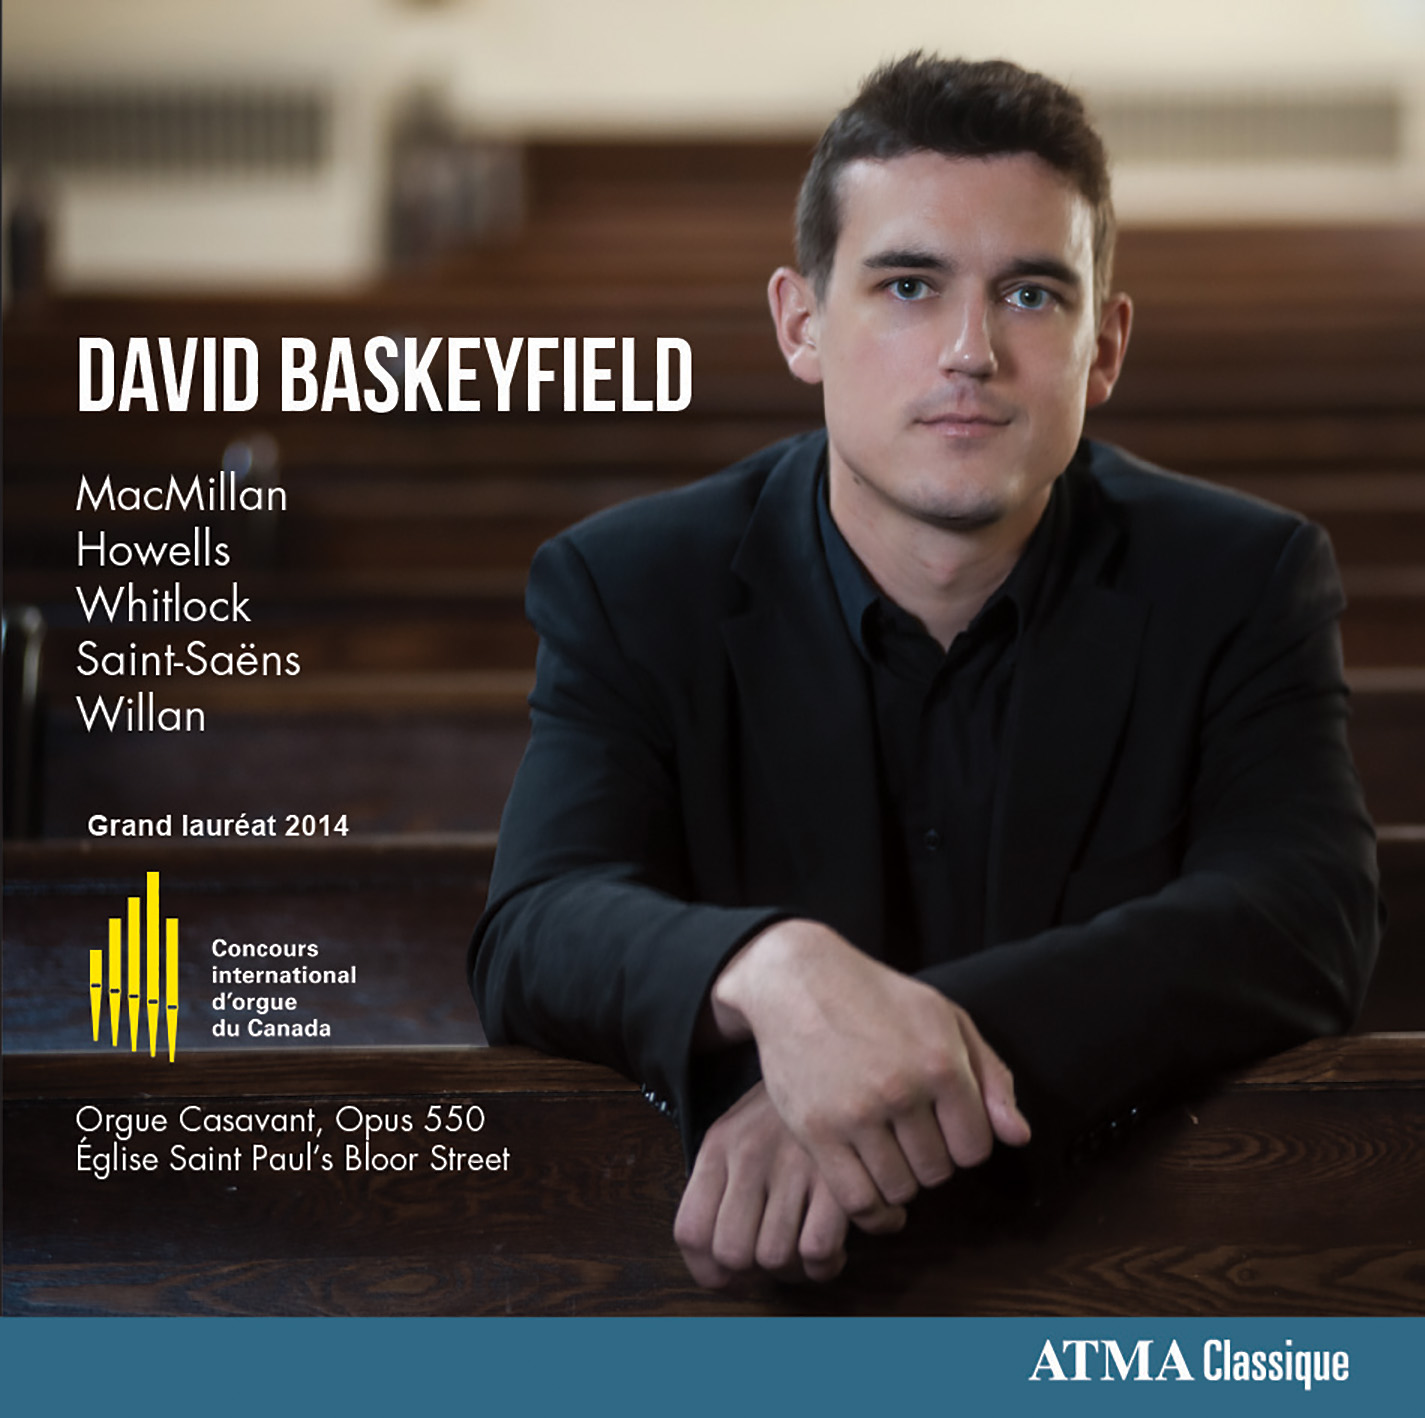 IN REVIEW: MUSIC FOR ORGAN (David Baskeyfield, organ; ATMA Classique ACD2 2719)